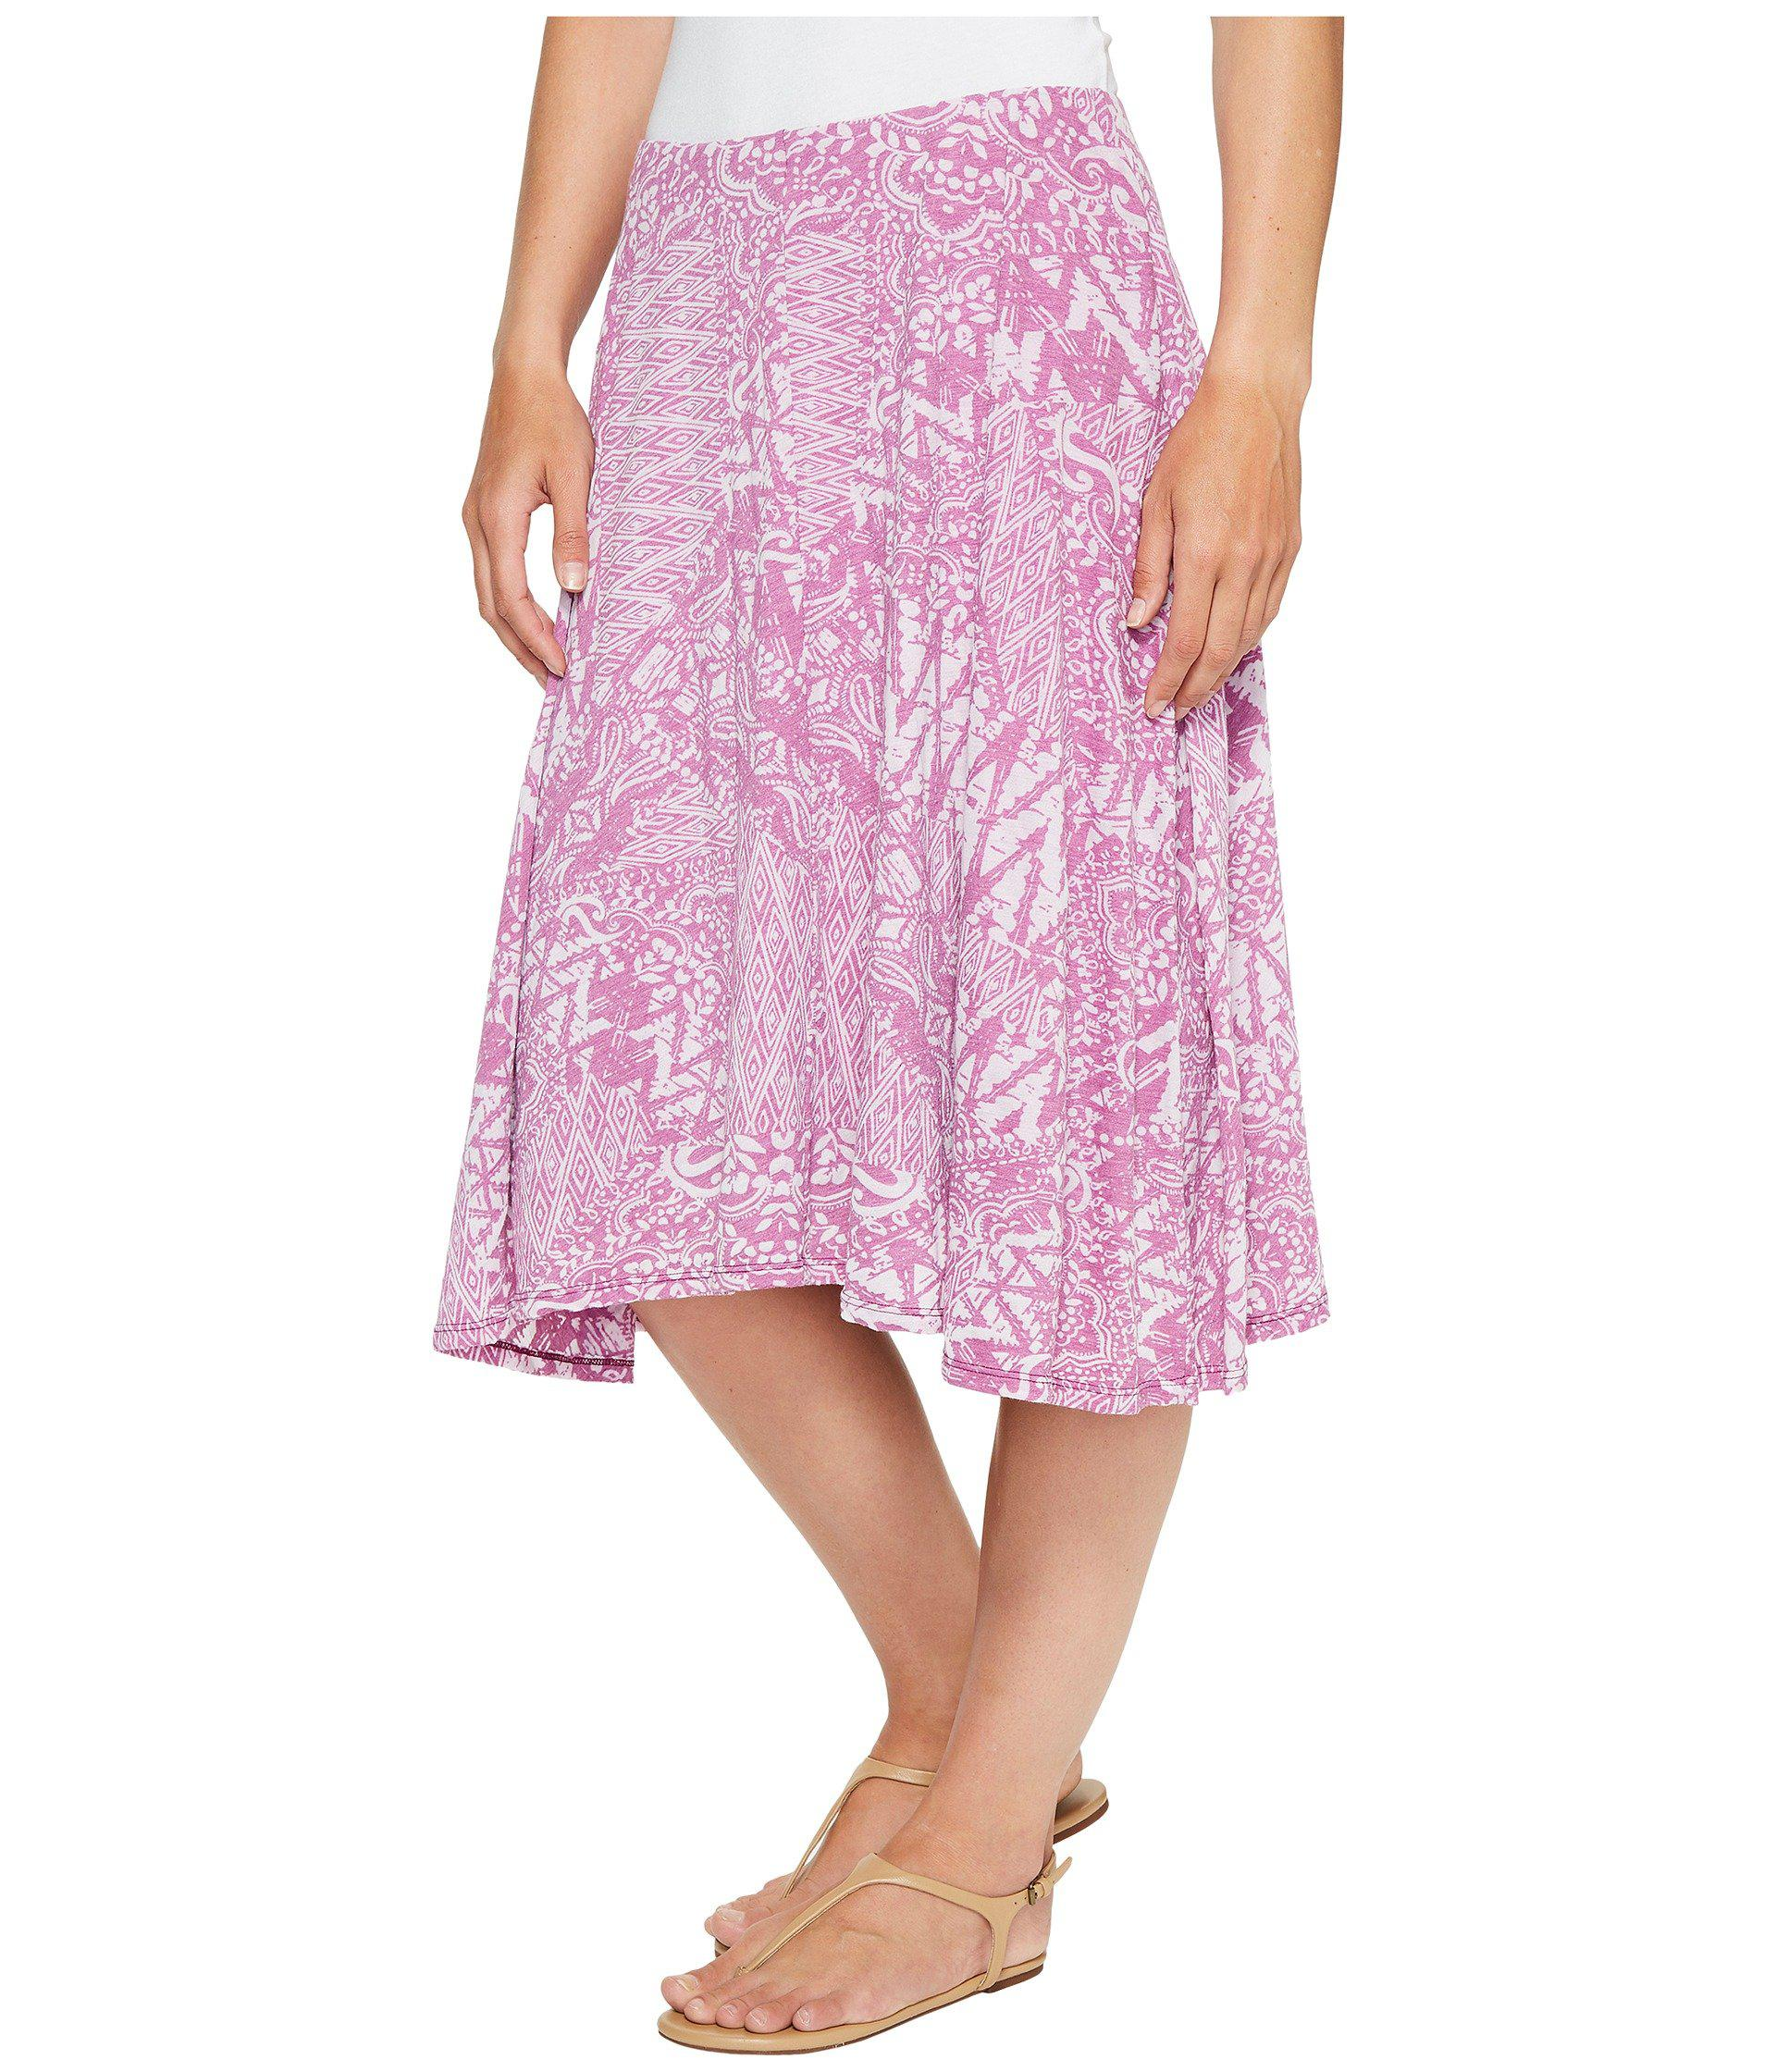 aa0e95b1005 Lyst - Mod-o-doc Patchwork Burnout Jersey Swing Skirt With Lining in Pink - Save  56%